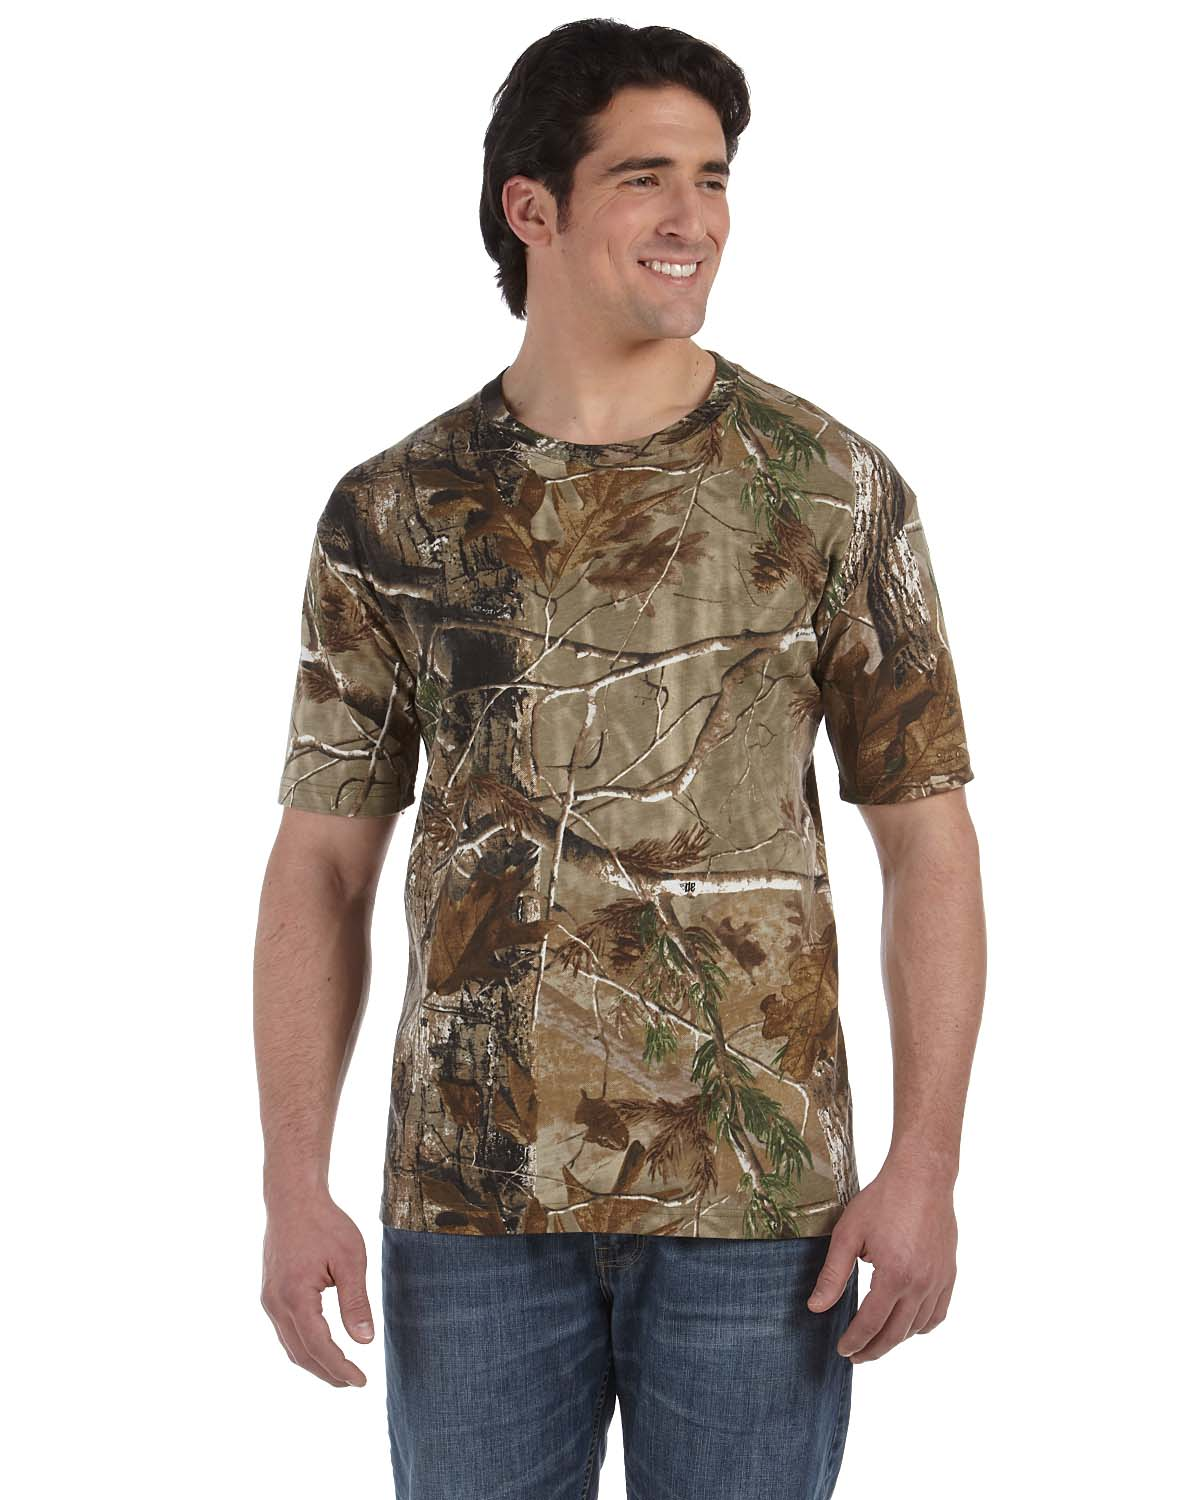 8d114f85 ... REALTREE® Camouflage Short-Sleeve T-Shirt. Click to Zoom